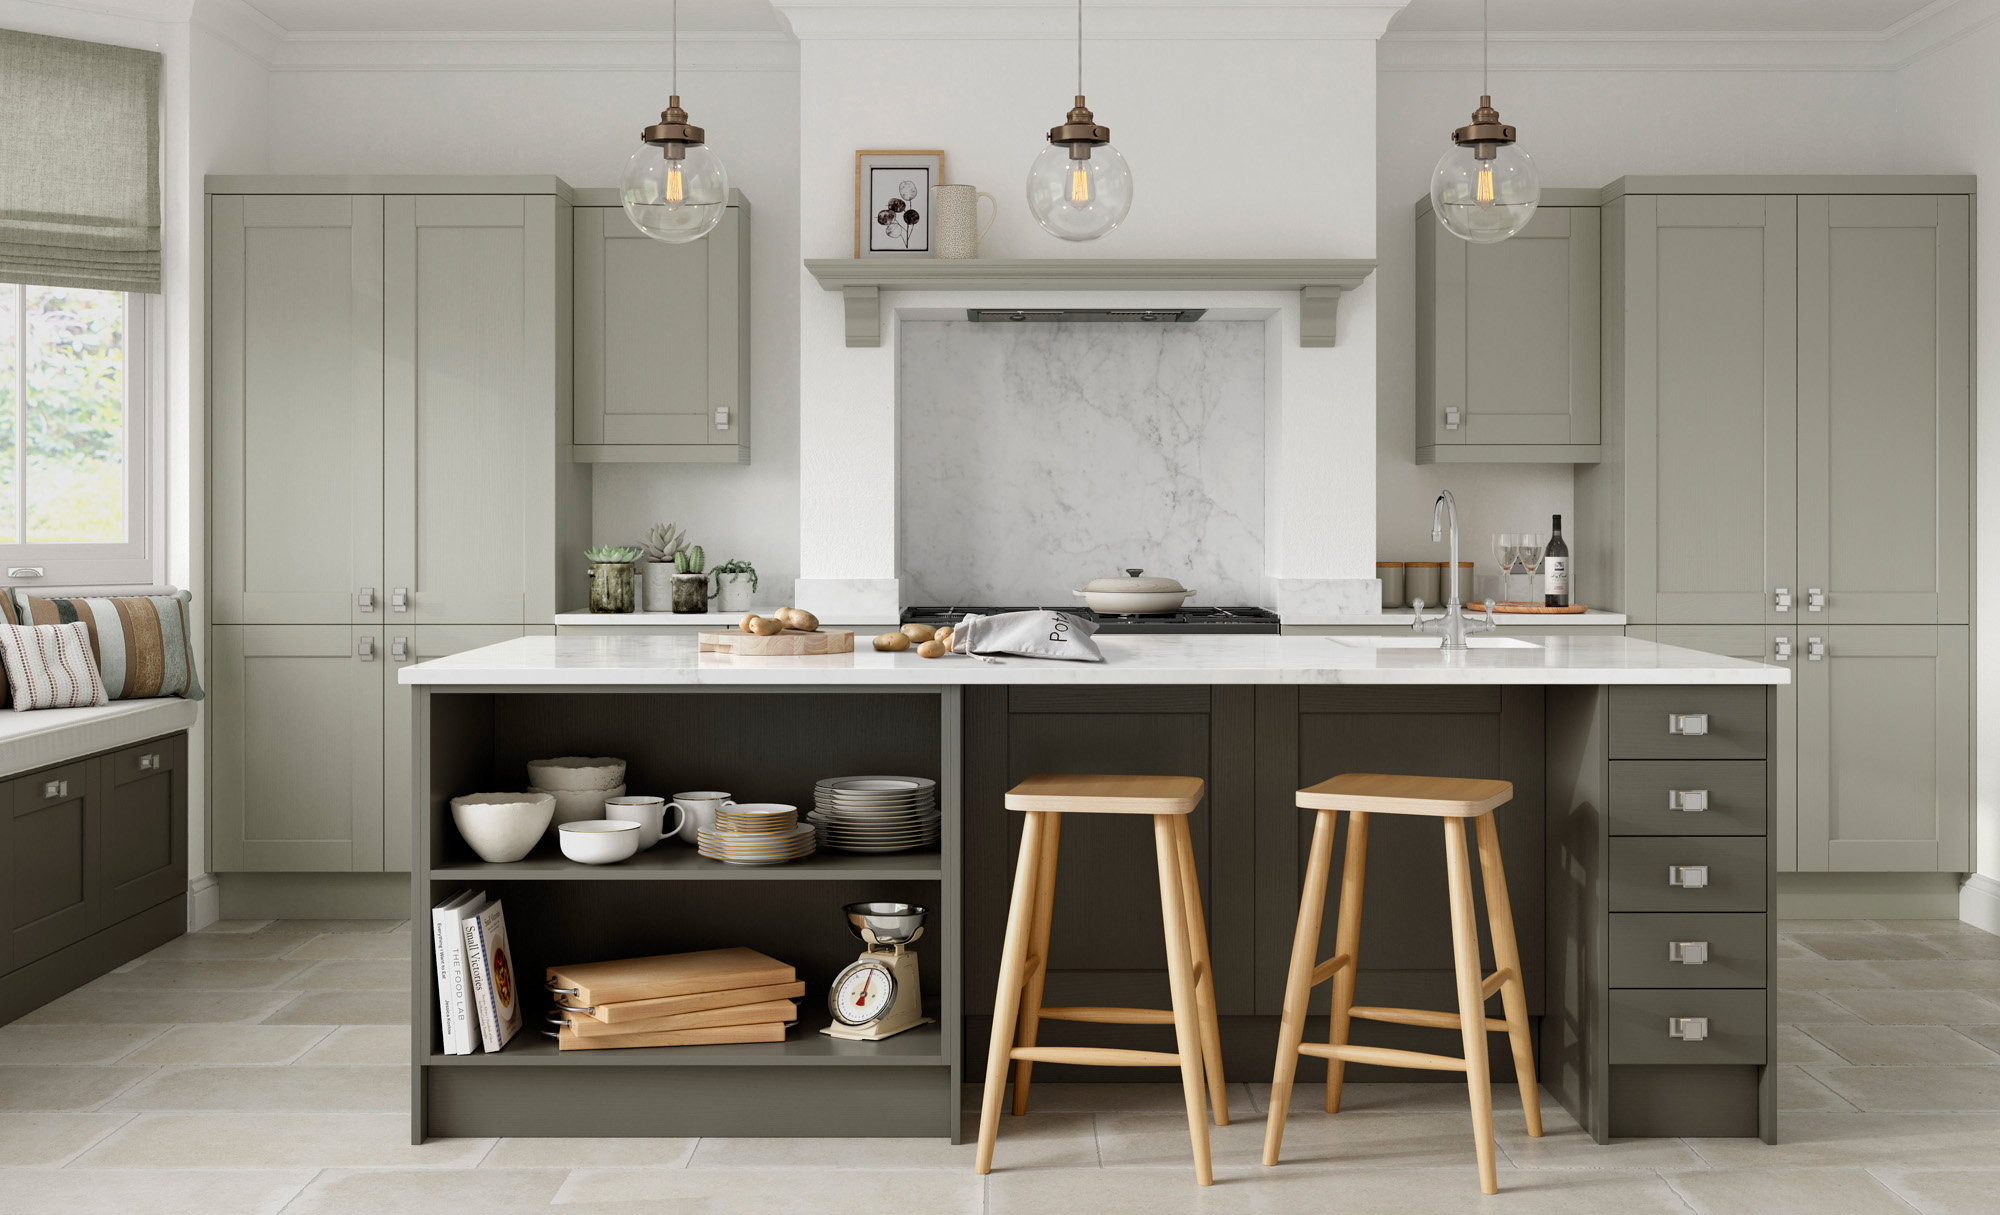 Kensington classic kitchen mussel and lava colour